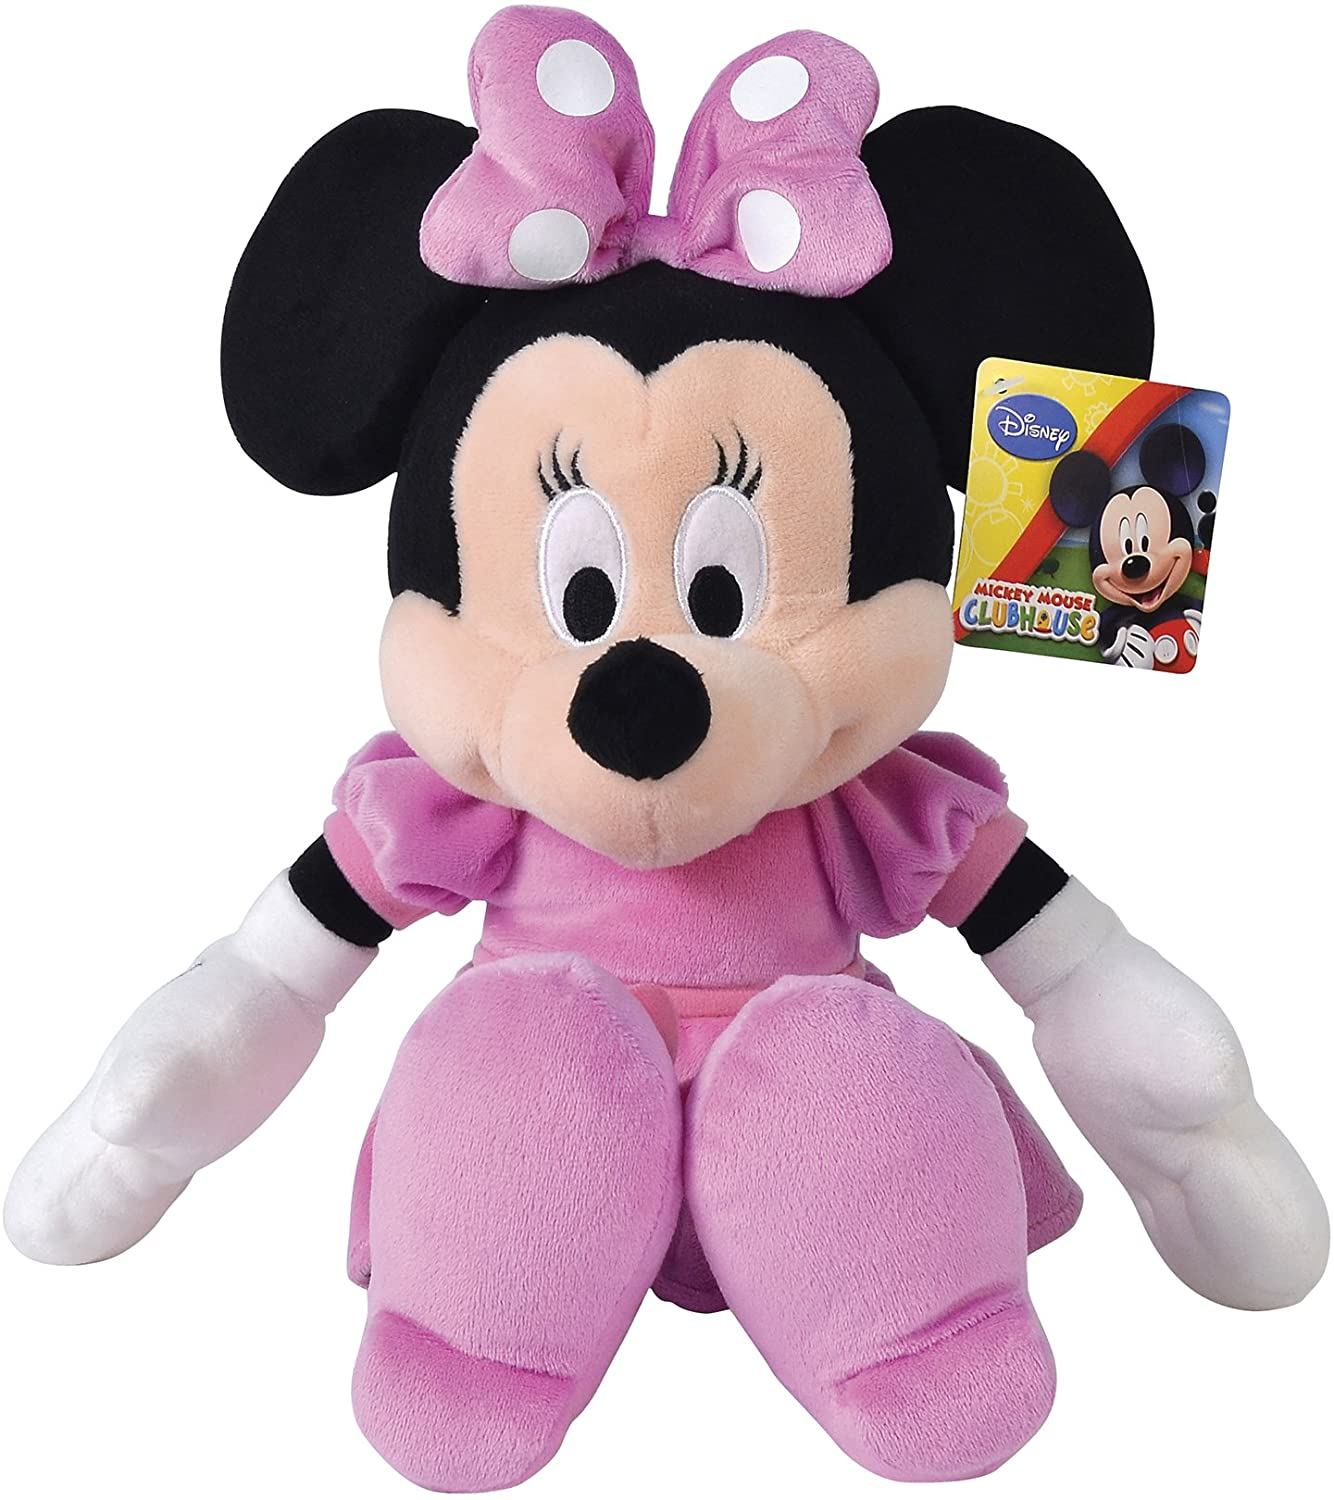 Minnie Mouse Cuddly Cuddly Toy